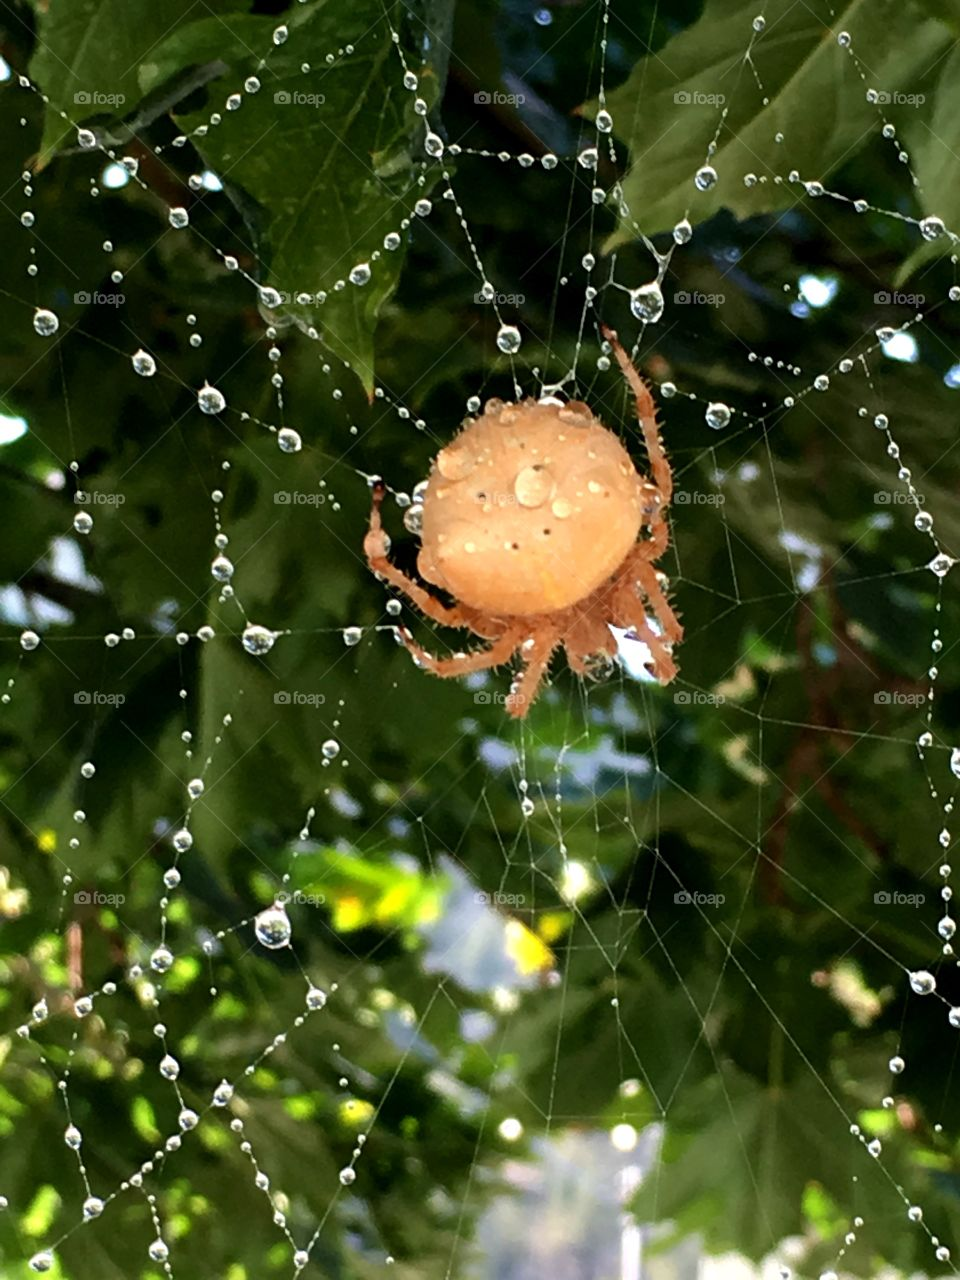 A large beige colored spider in the middle of her web with water droplets on a sunny day